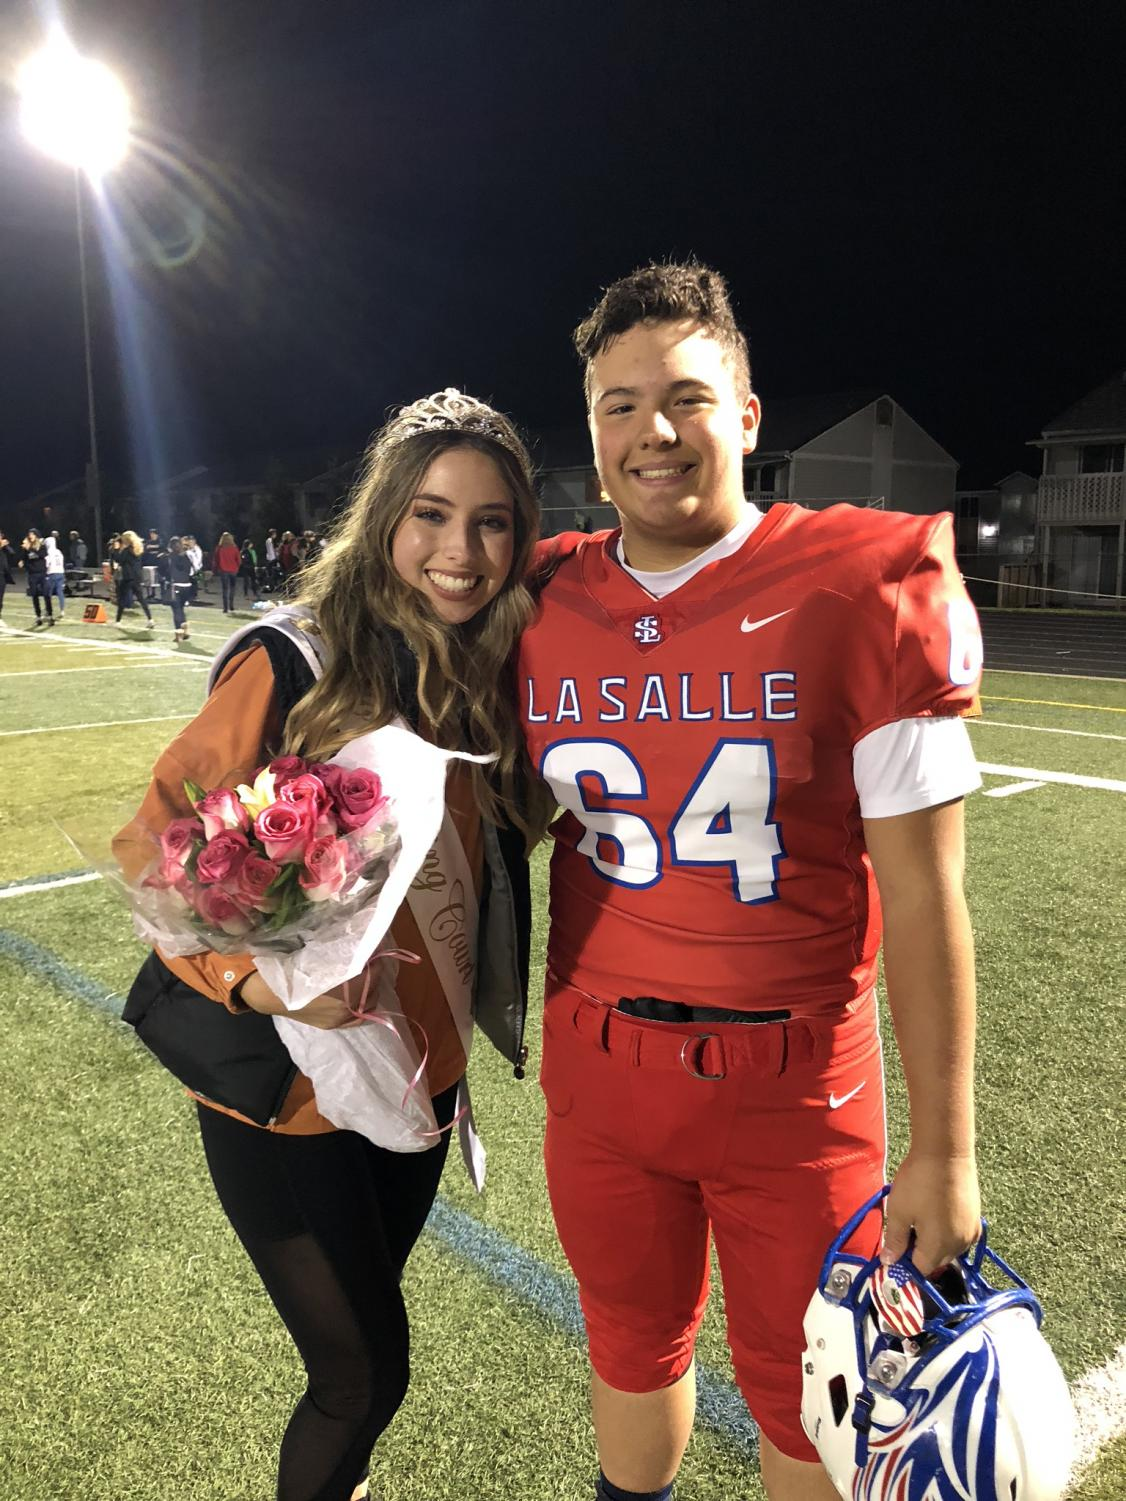 Griffiths and her brother William after the Falcons won over Parkrose during the Homecoming game and after Griffiths won Homecoming queen.